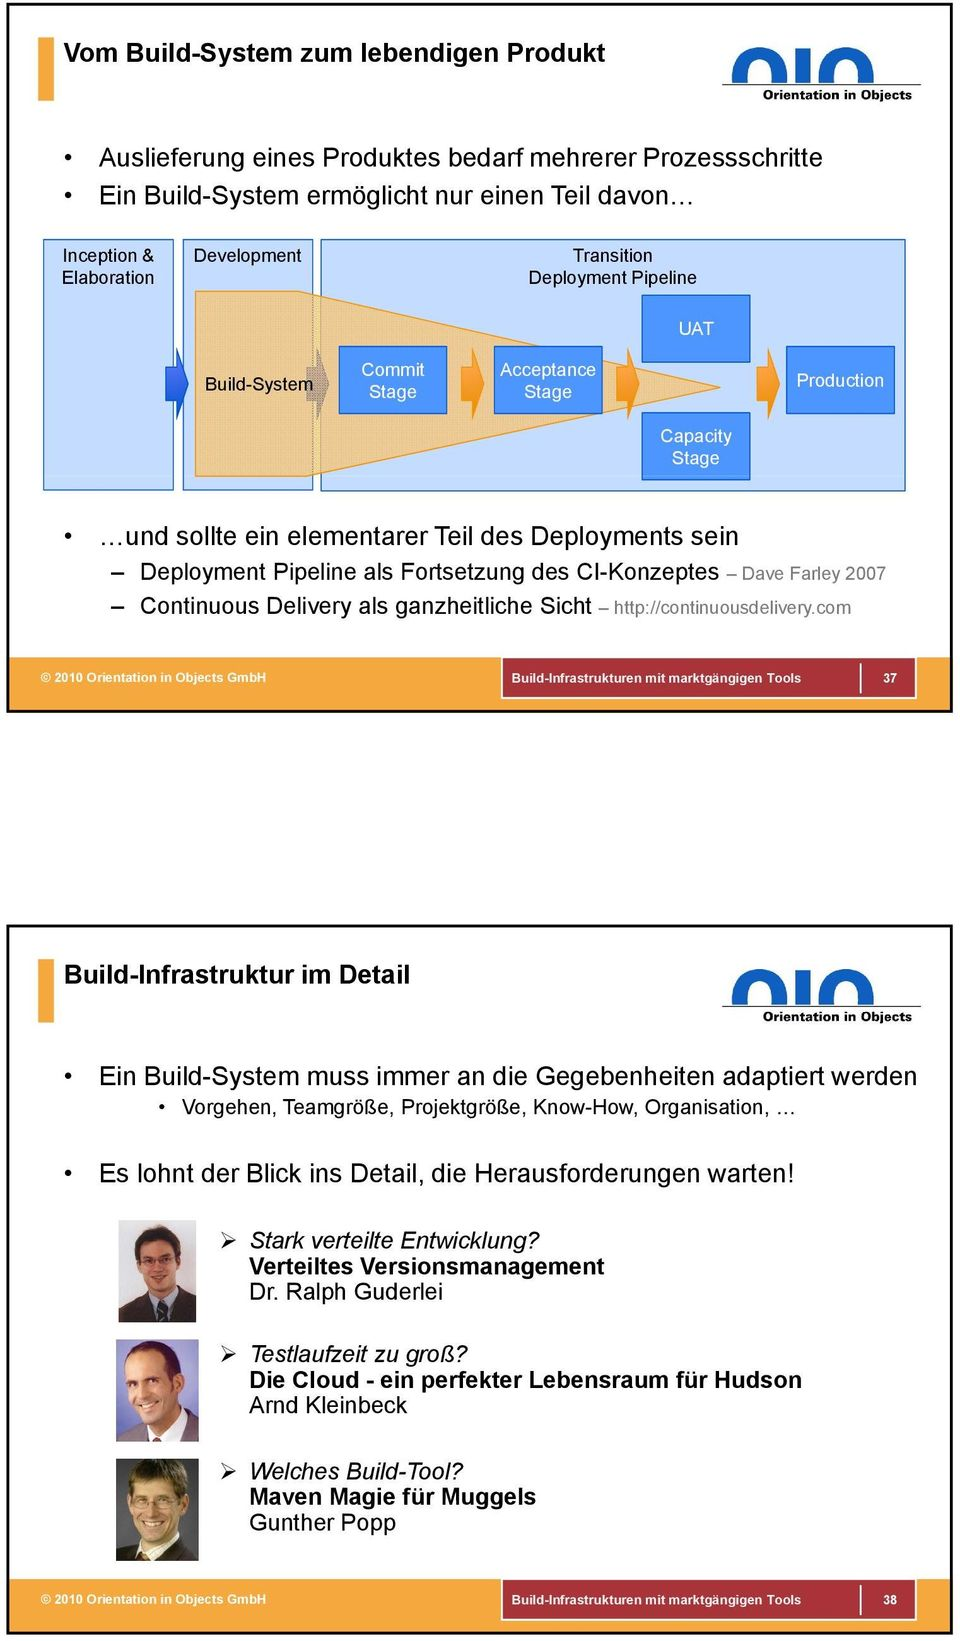 Dave Farley 2007 Continuous Delivery als ganzheitliche Sicht http://continuousdelivery.